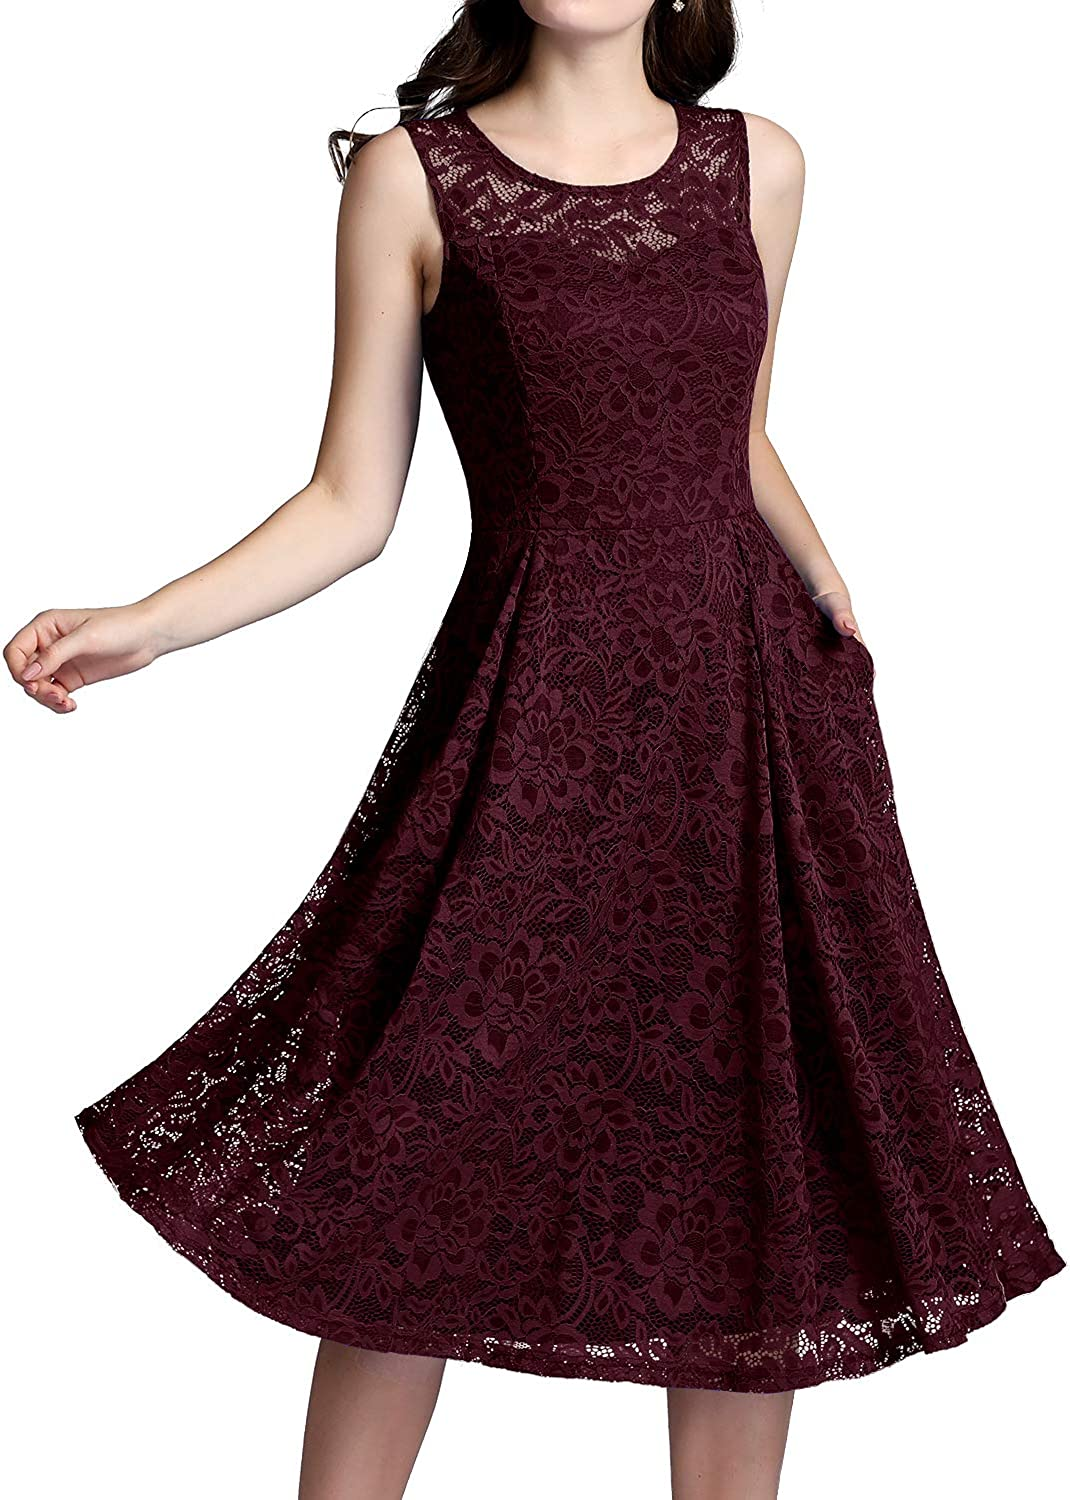 ALAGIRLS Womens Lace Vintage Midi Bridesmaid Dress Tea Length Wedding Formal Party Swing Gowns Pocket